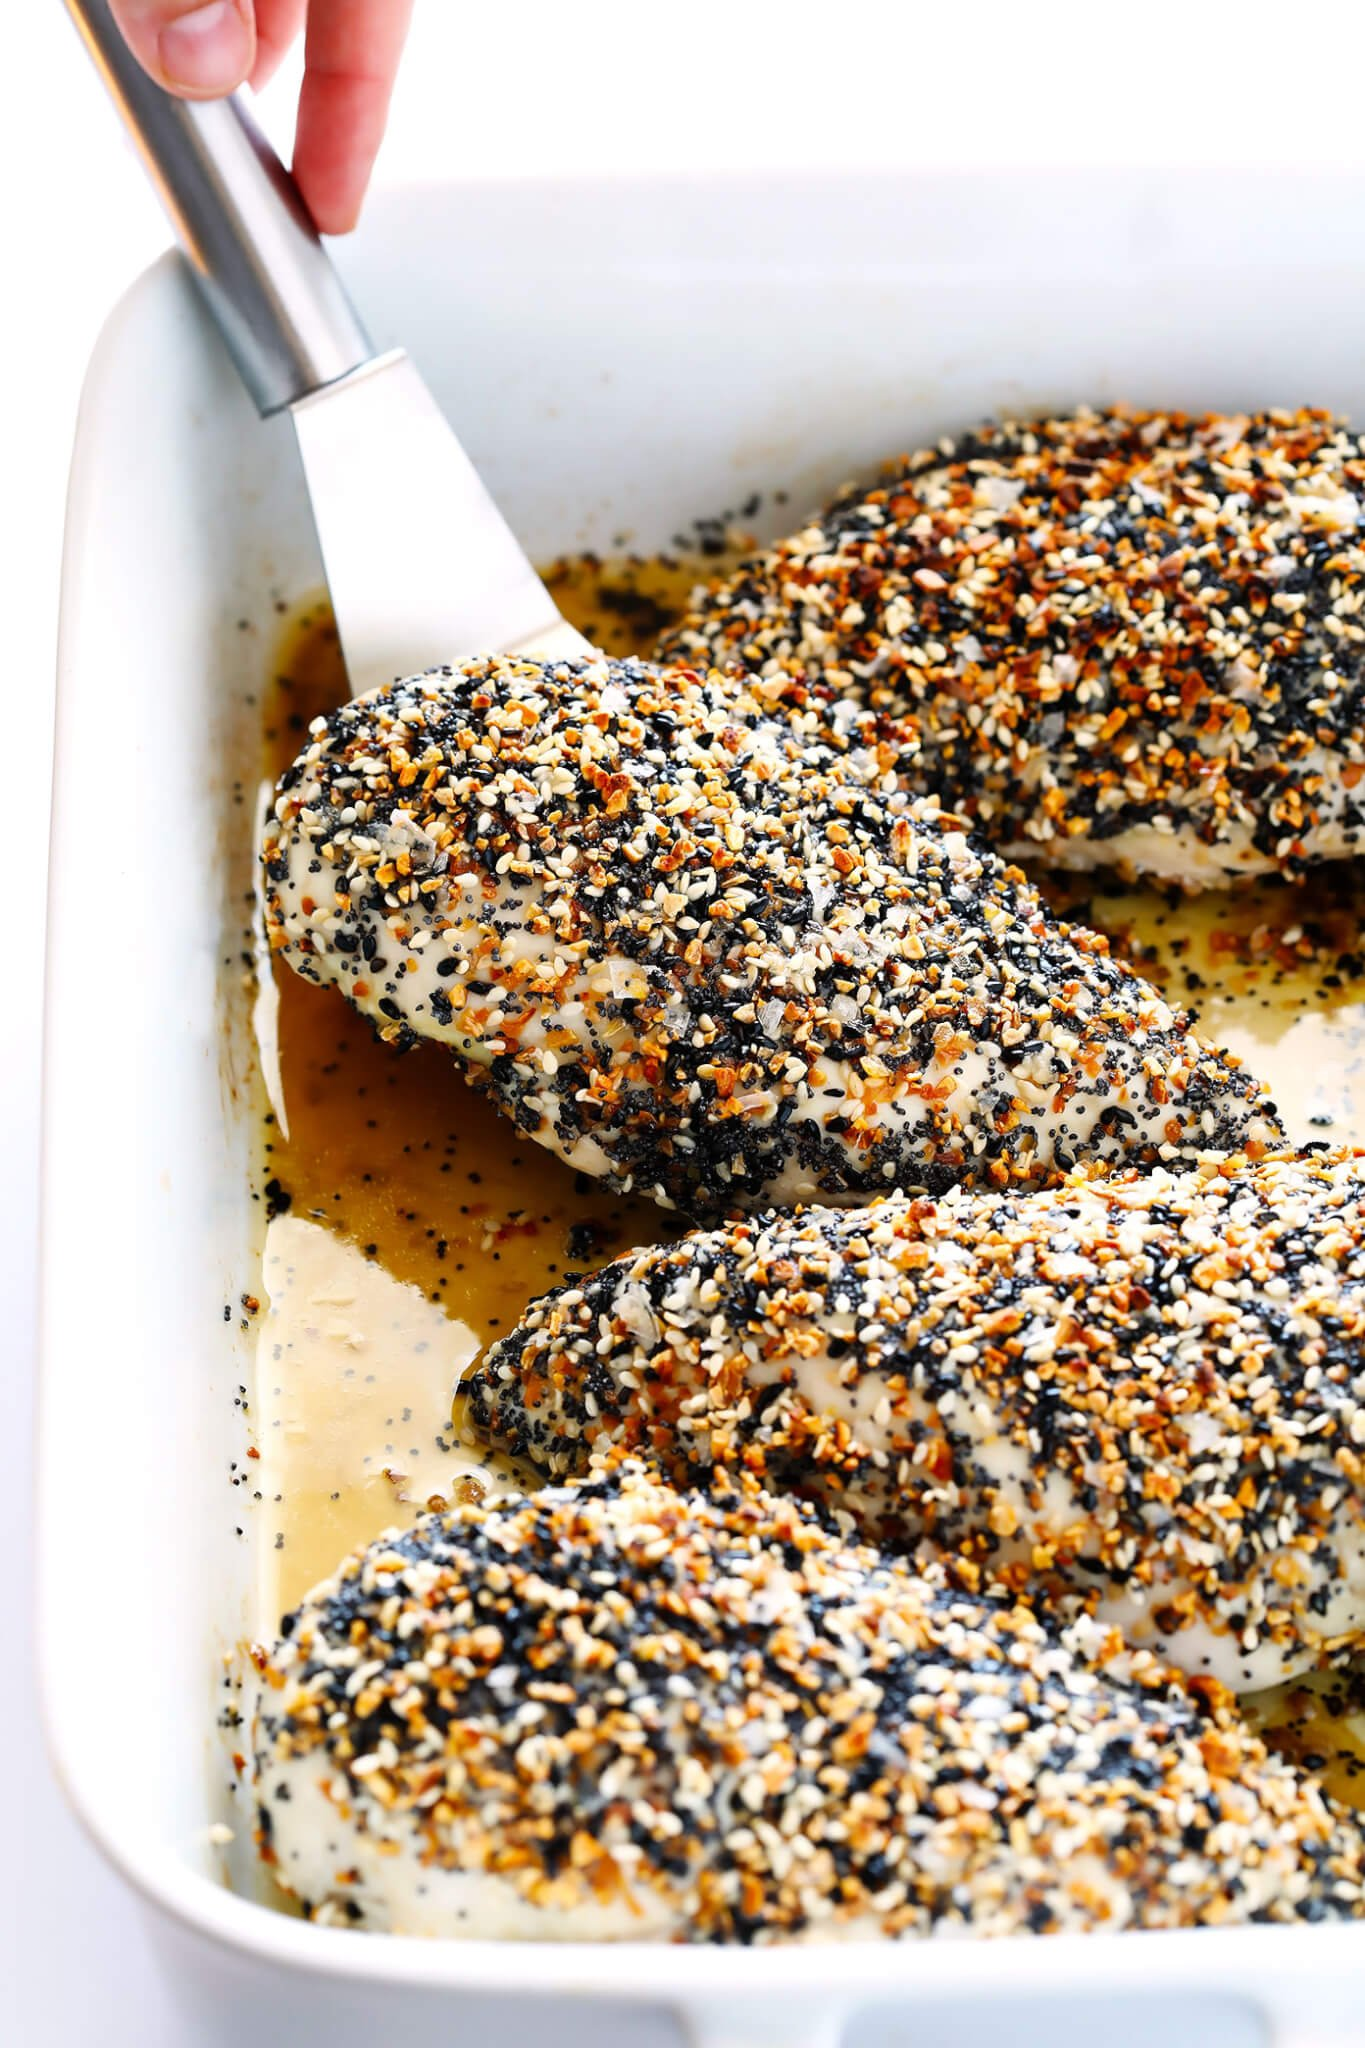 "This ""Everything"" Chicken recipe is made with yummy everything bagel seasoning, and baked in the oven to juicy, tender, delicious perfection. It's an easy and gluten-free dinner idea that everyone will love, especially with those garlic, poppyseed, sesame flavors! 